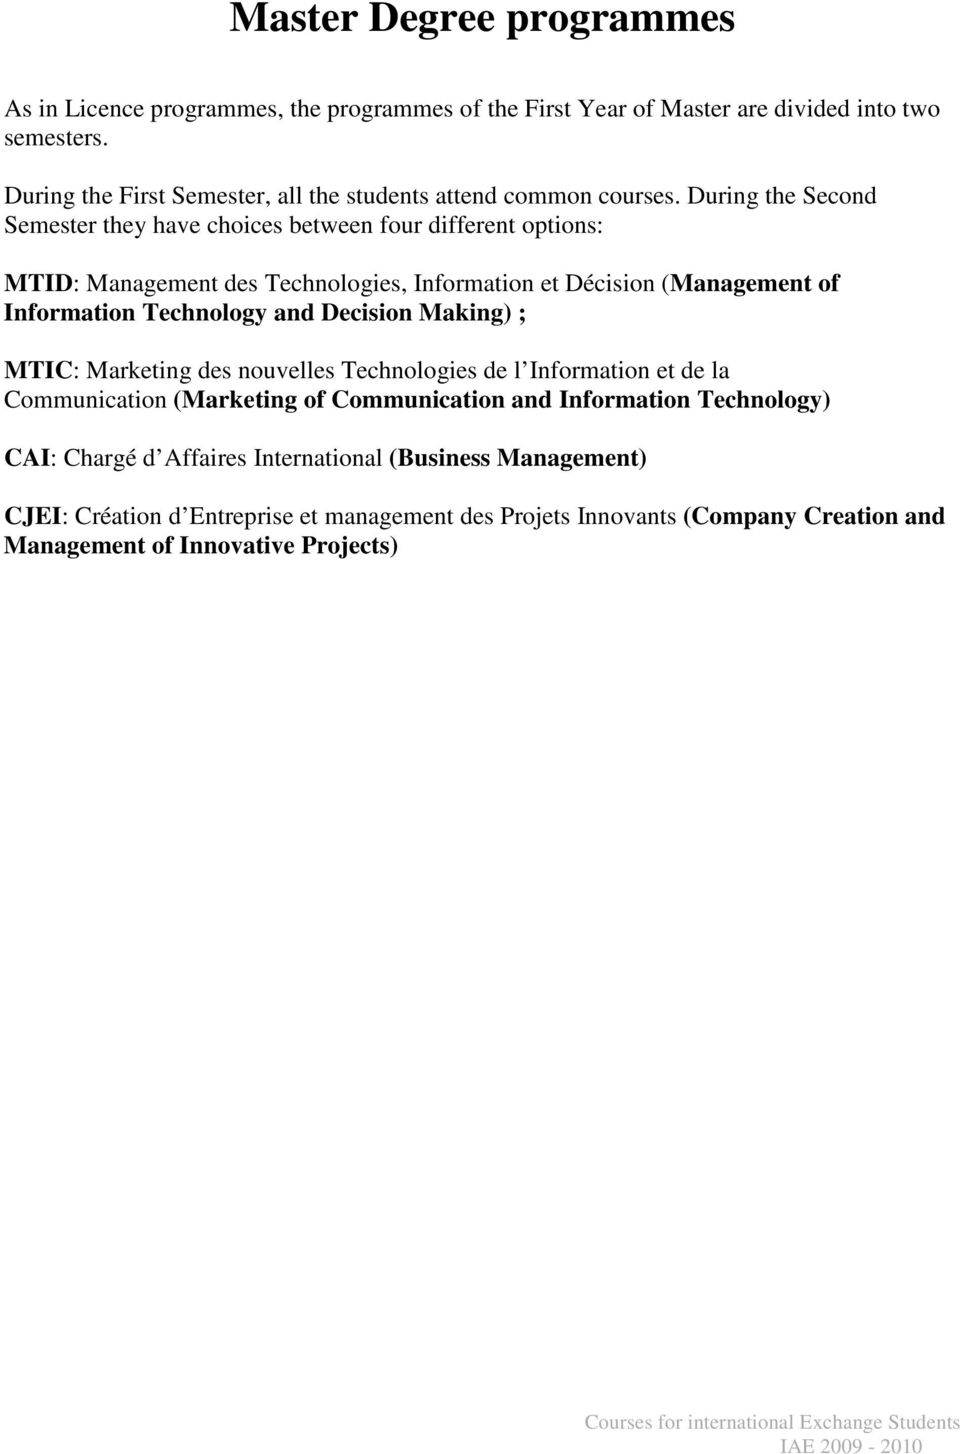 During the Second Semester they have choices between four different options: MTID: Management des Technologies, Information et Décision (Management of Information Technology